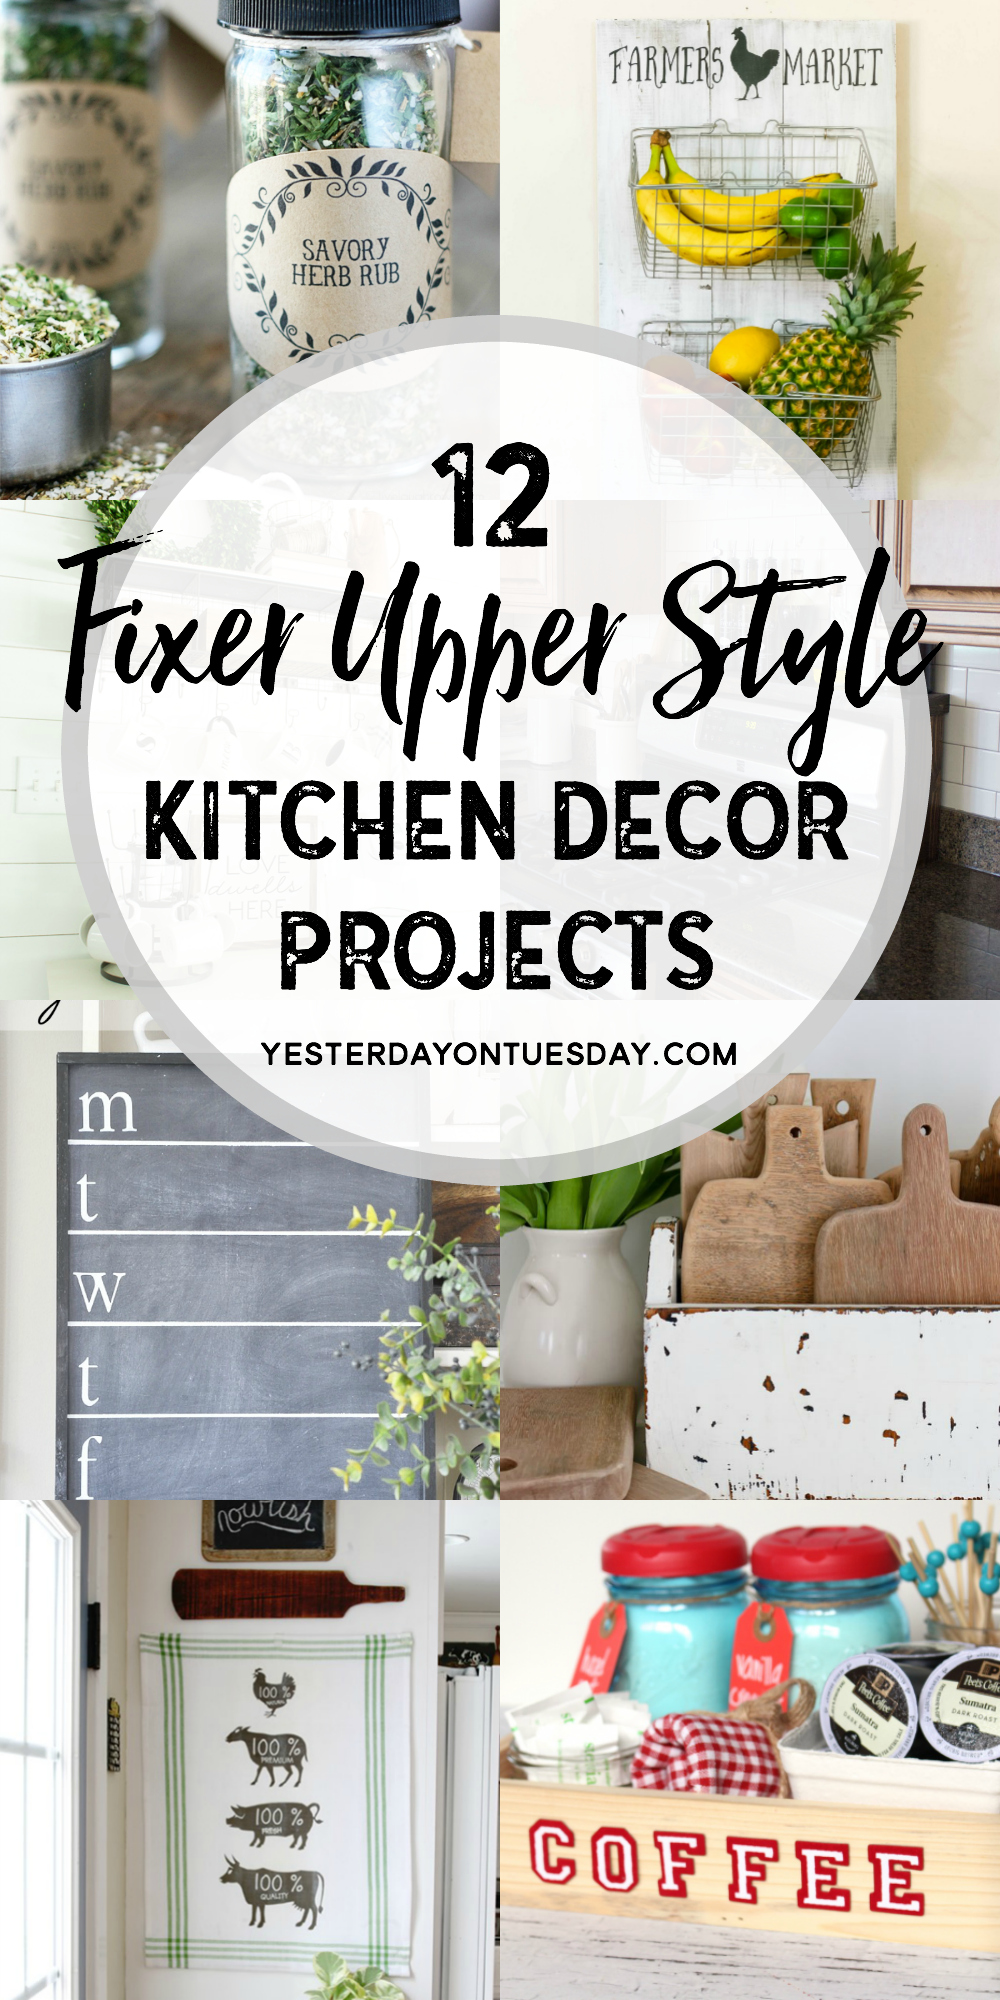 Fixer upper modern kitchen - More Fixer Upper Style Modern Farmhouse Kitchen Projects